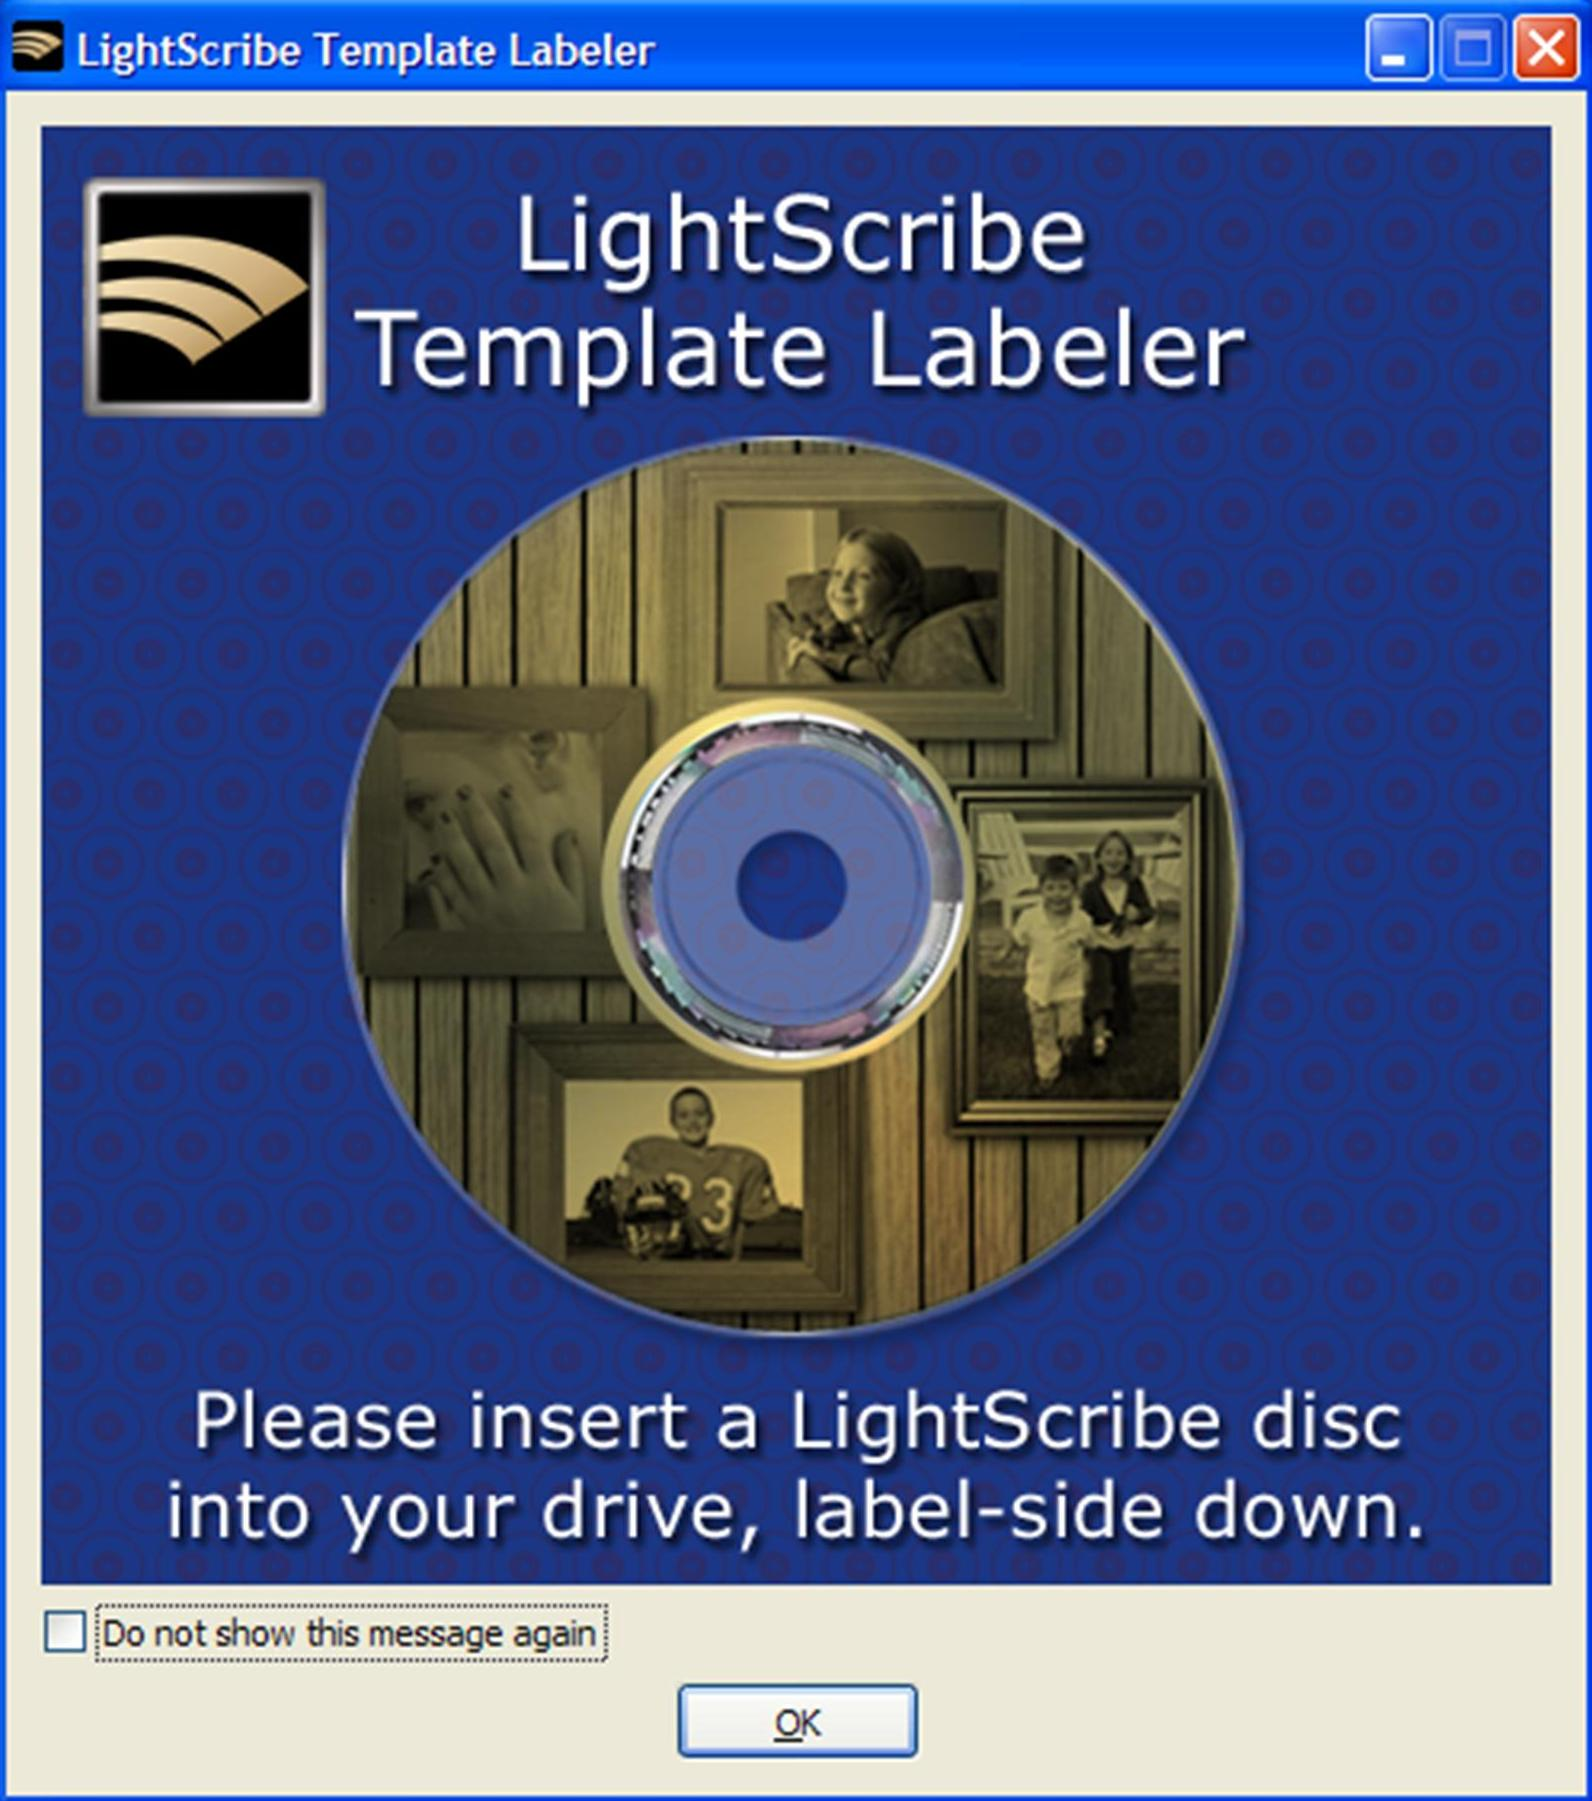 LightScribe Introduces New Template Labeler Software